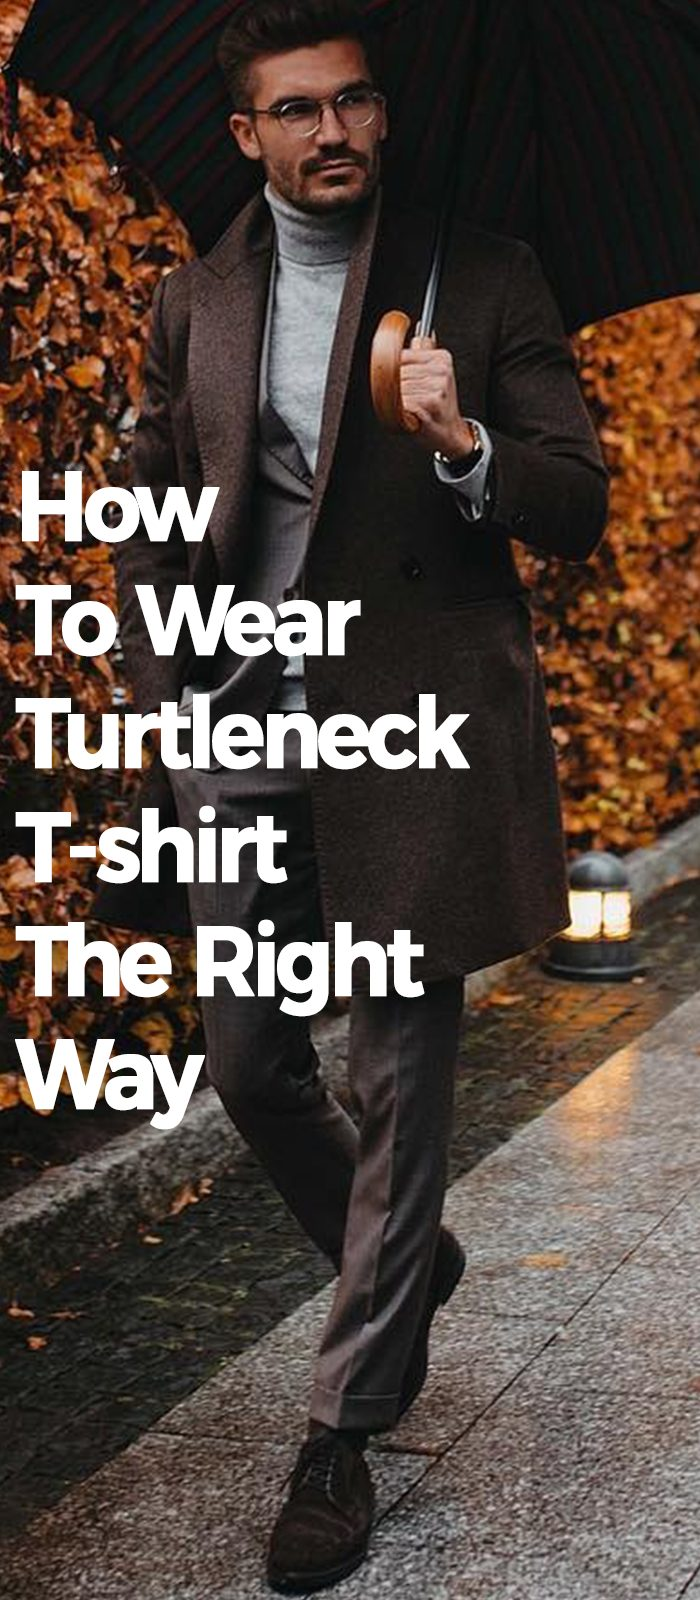 How To Wear Turtleneck T-shirt The Right Way